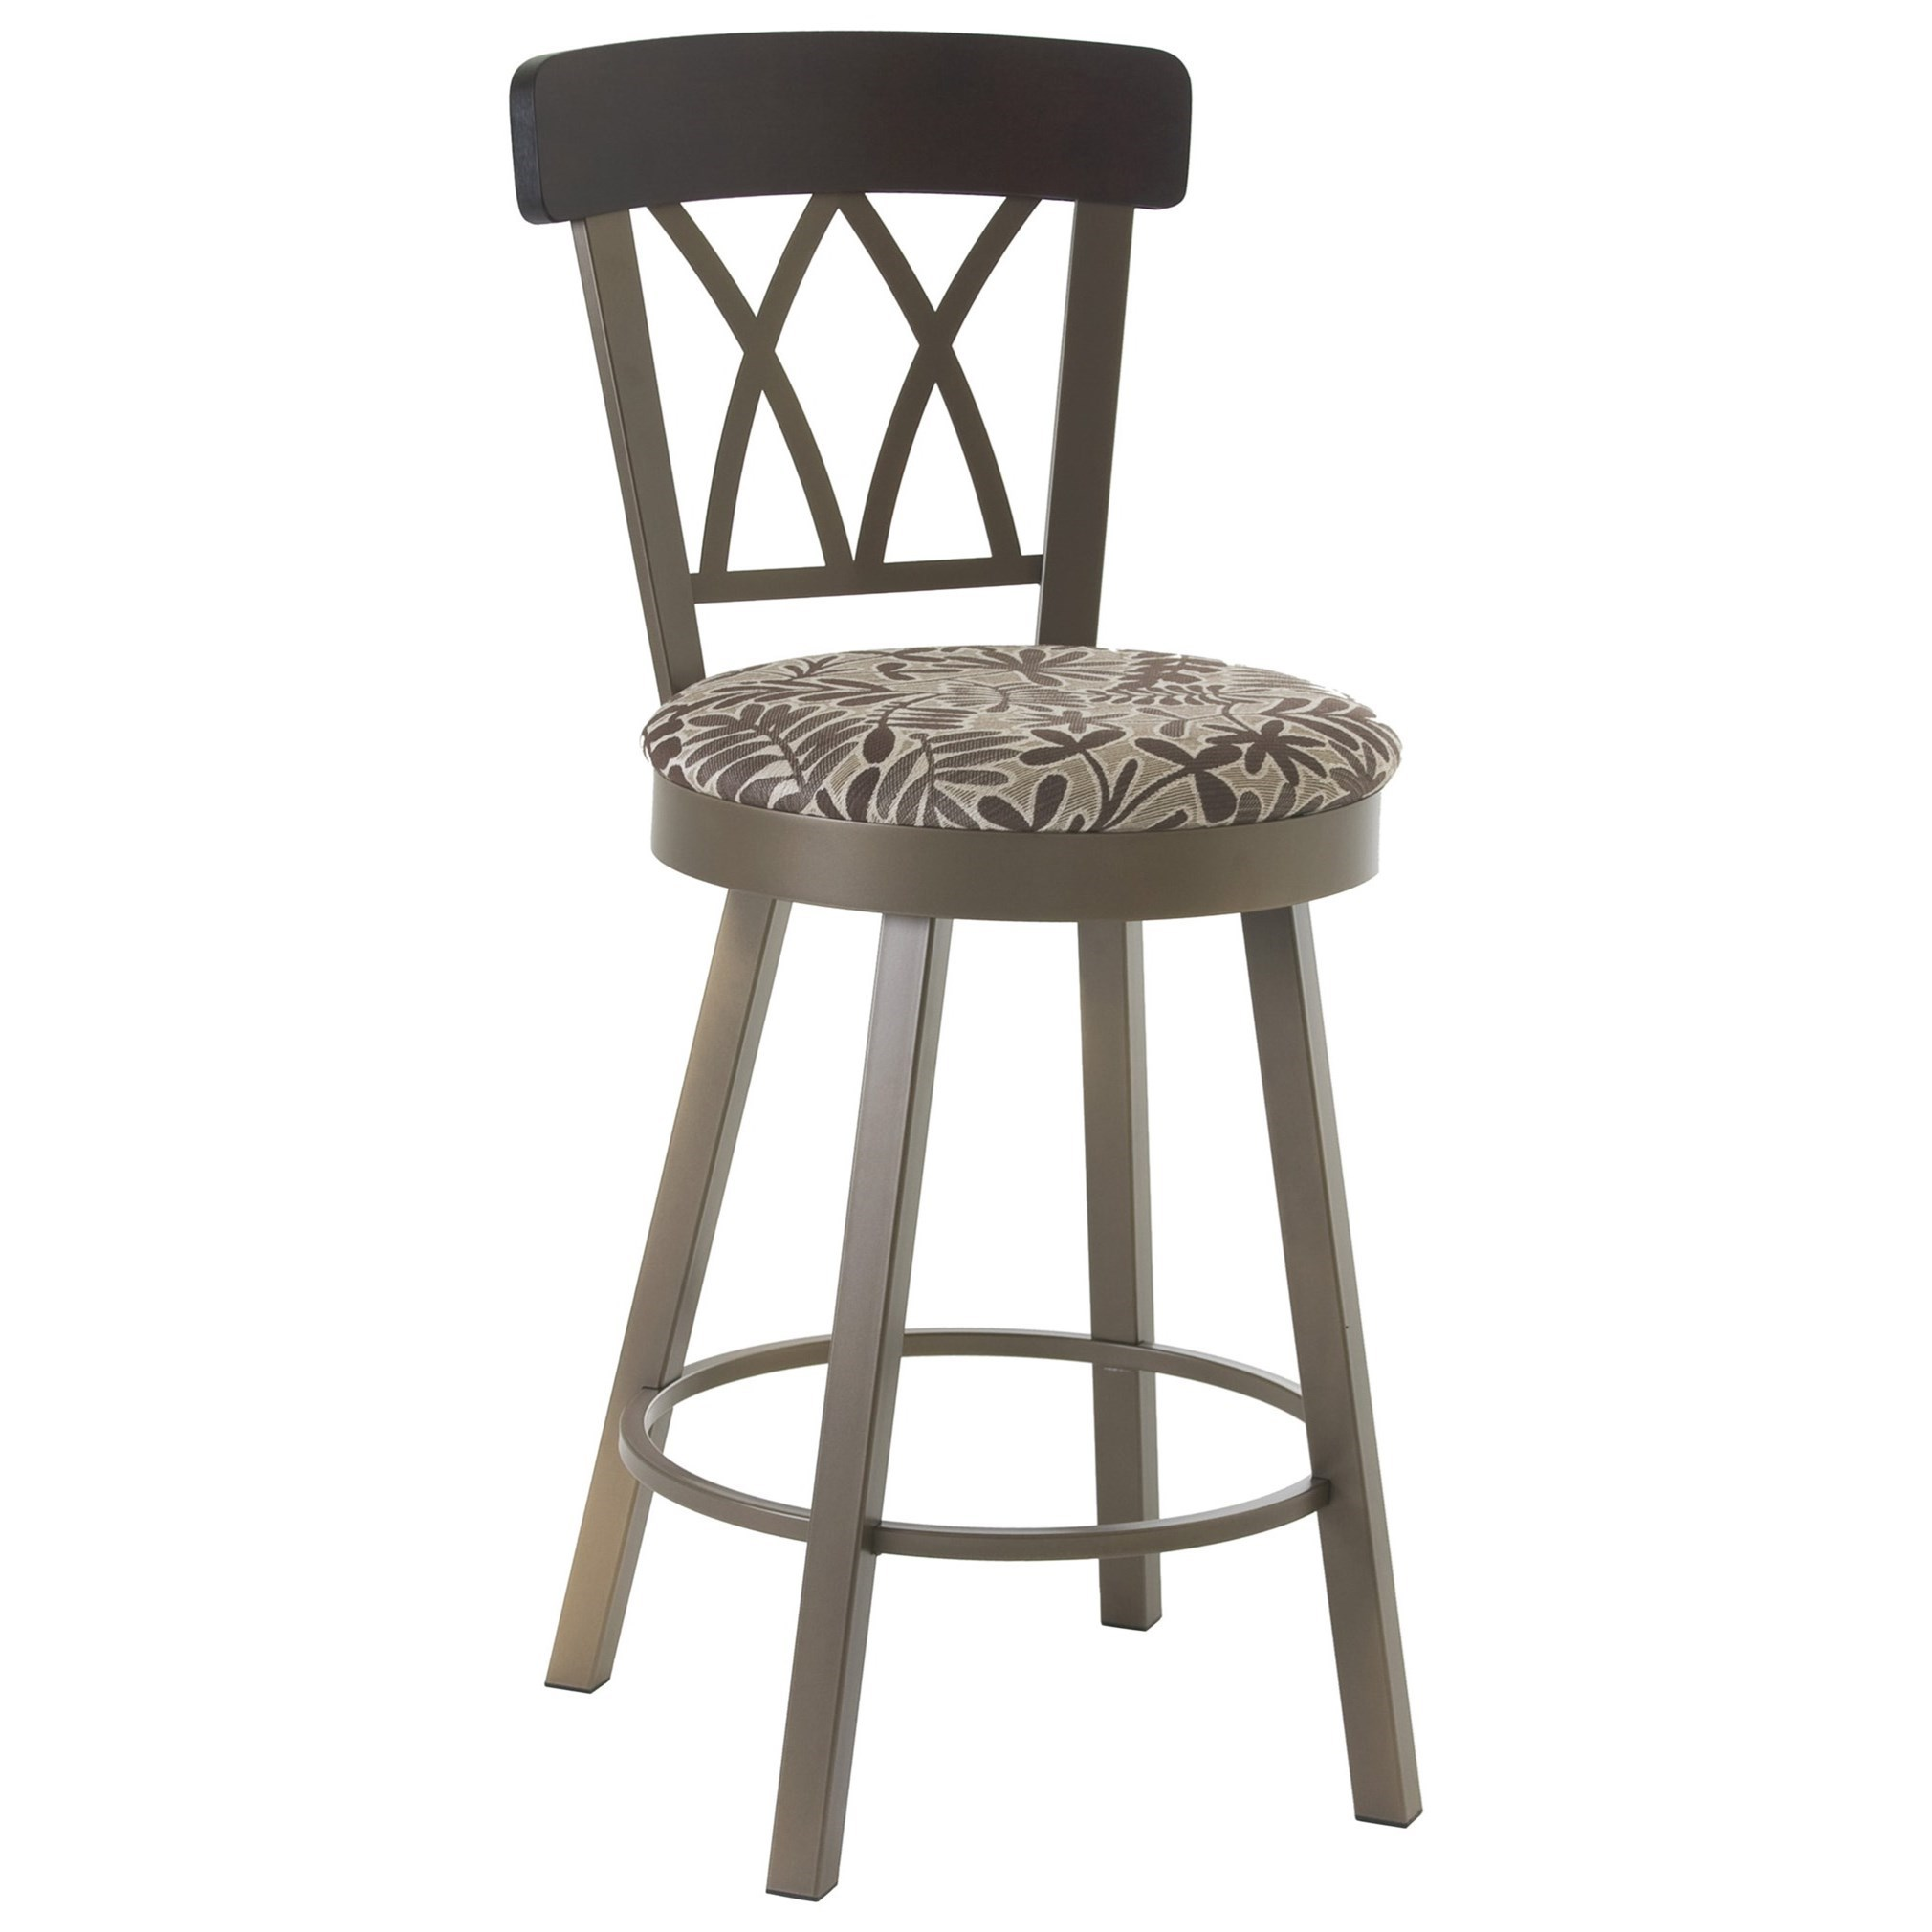 "Countryside 26"" Brittany Swivel Counter Stool by Amisco at Dinette Depot"